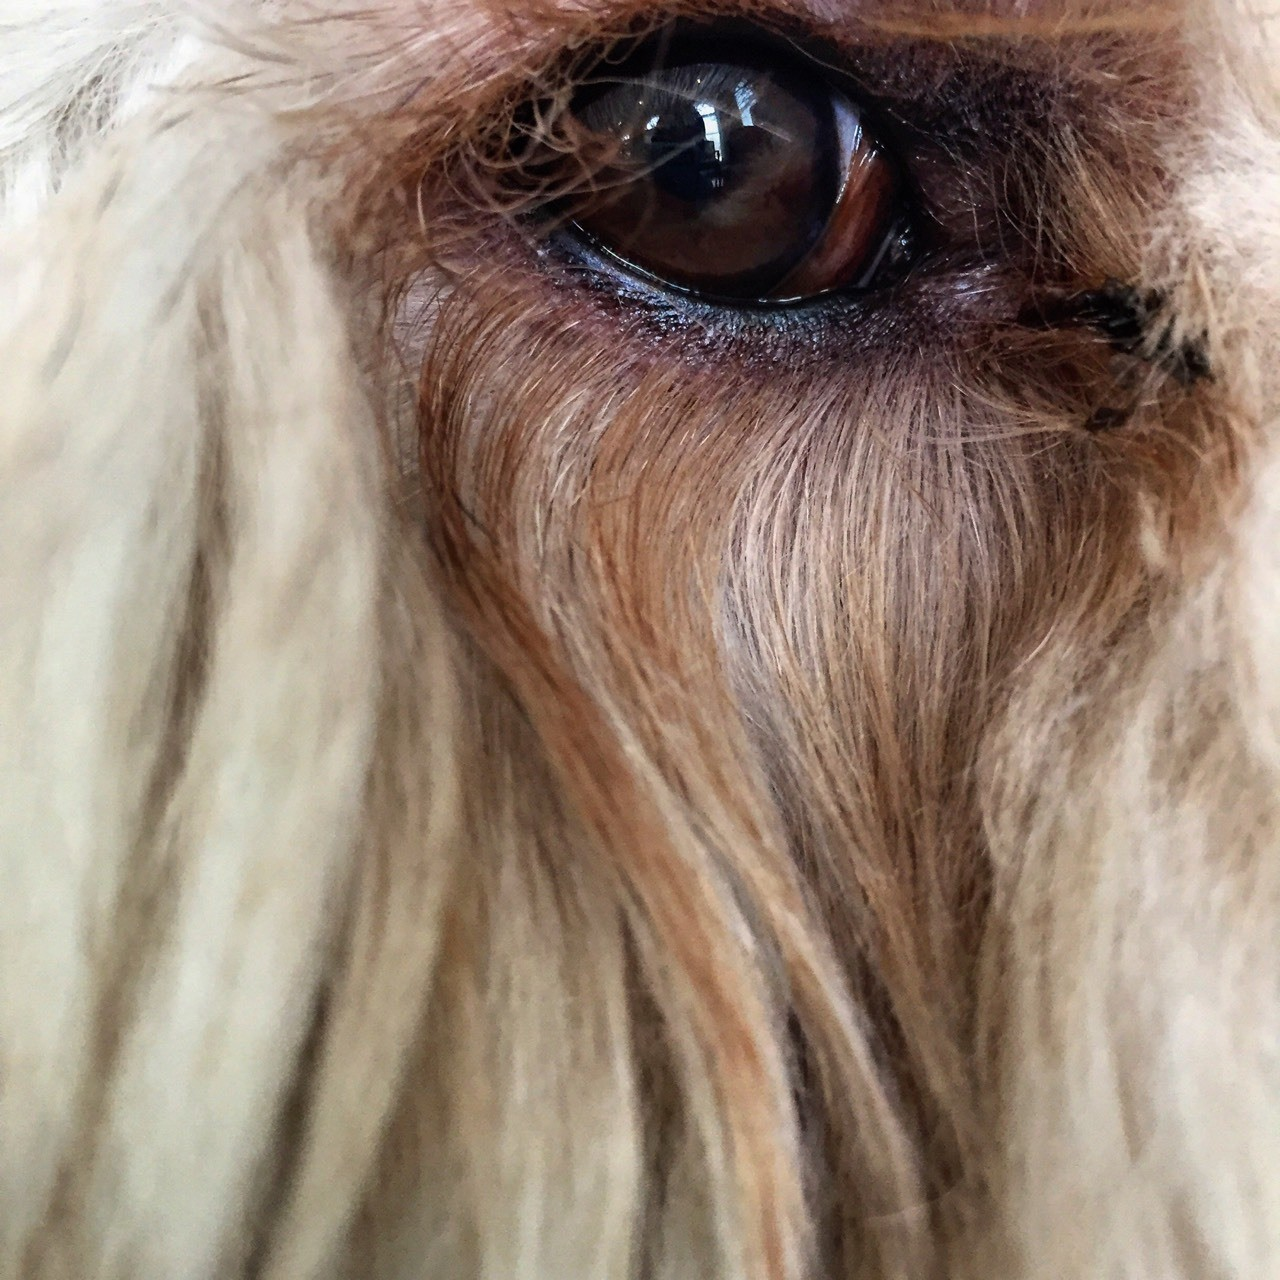 This photo focused on the eye of a dog. Notice how the eye is t in the center, it adds depth to the photo which also adds a sense of mystery.